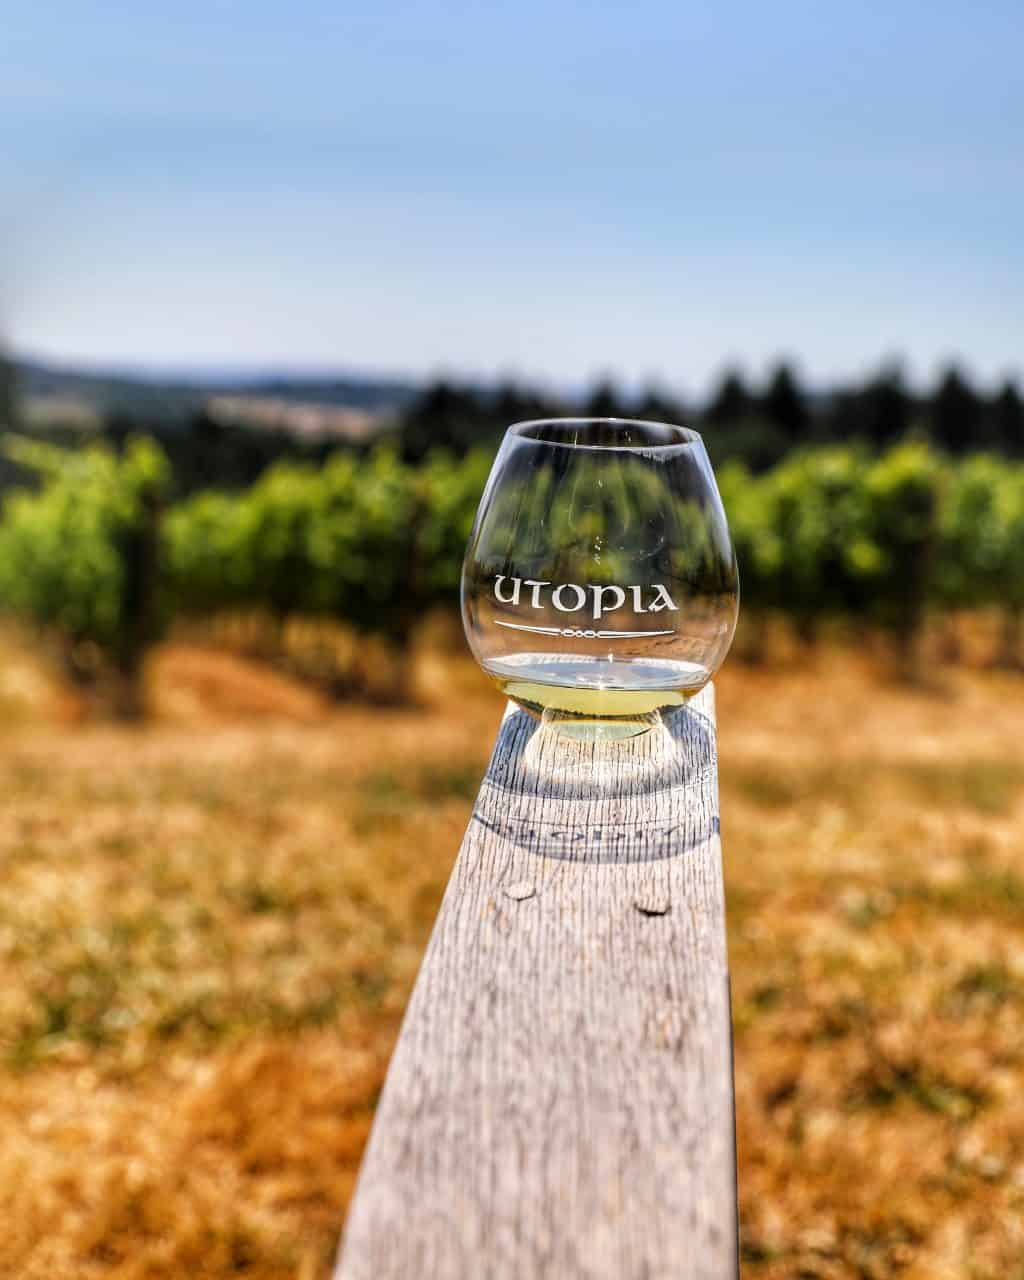 white wine at Utopia Winery with vineyard background